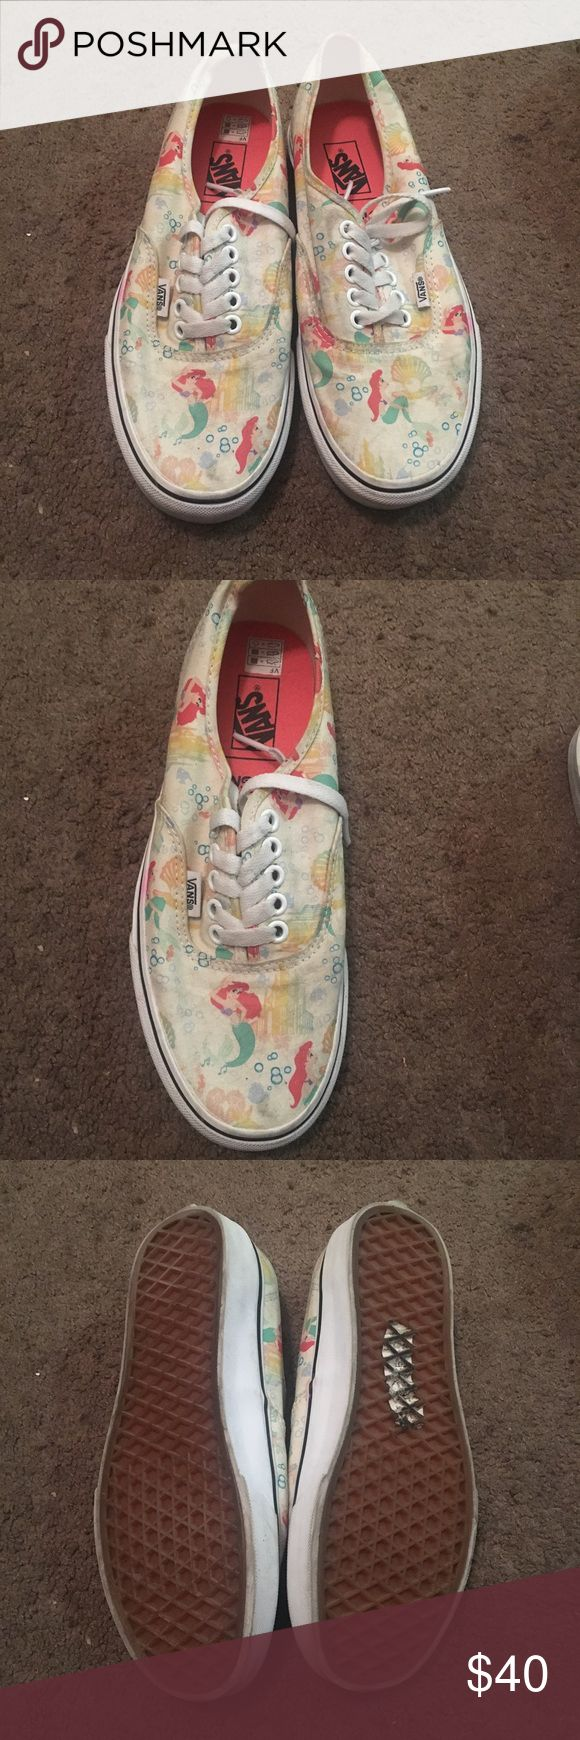 """""""The Little Mermaid"""" Limited Edition Vans Hard to find Disney x Vans collaboration for this """"The Little Mermaid"""" Shoe. Needs clean up but otherwise in GUC. Will not include original packaging.  All shoes sold as is. Will not be able to clean prior to shipping. Please feel free to ask questions prior to purchasing. Vans Shoes Sneakers"""